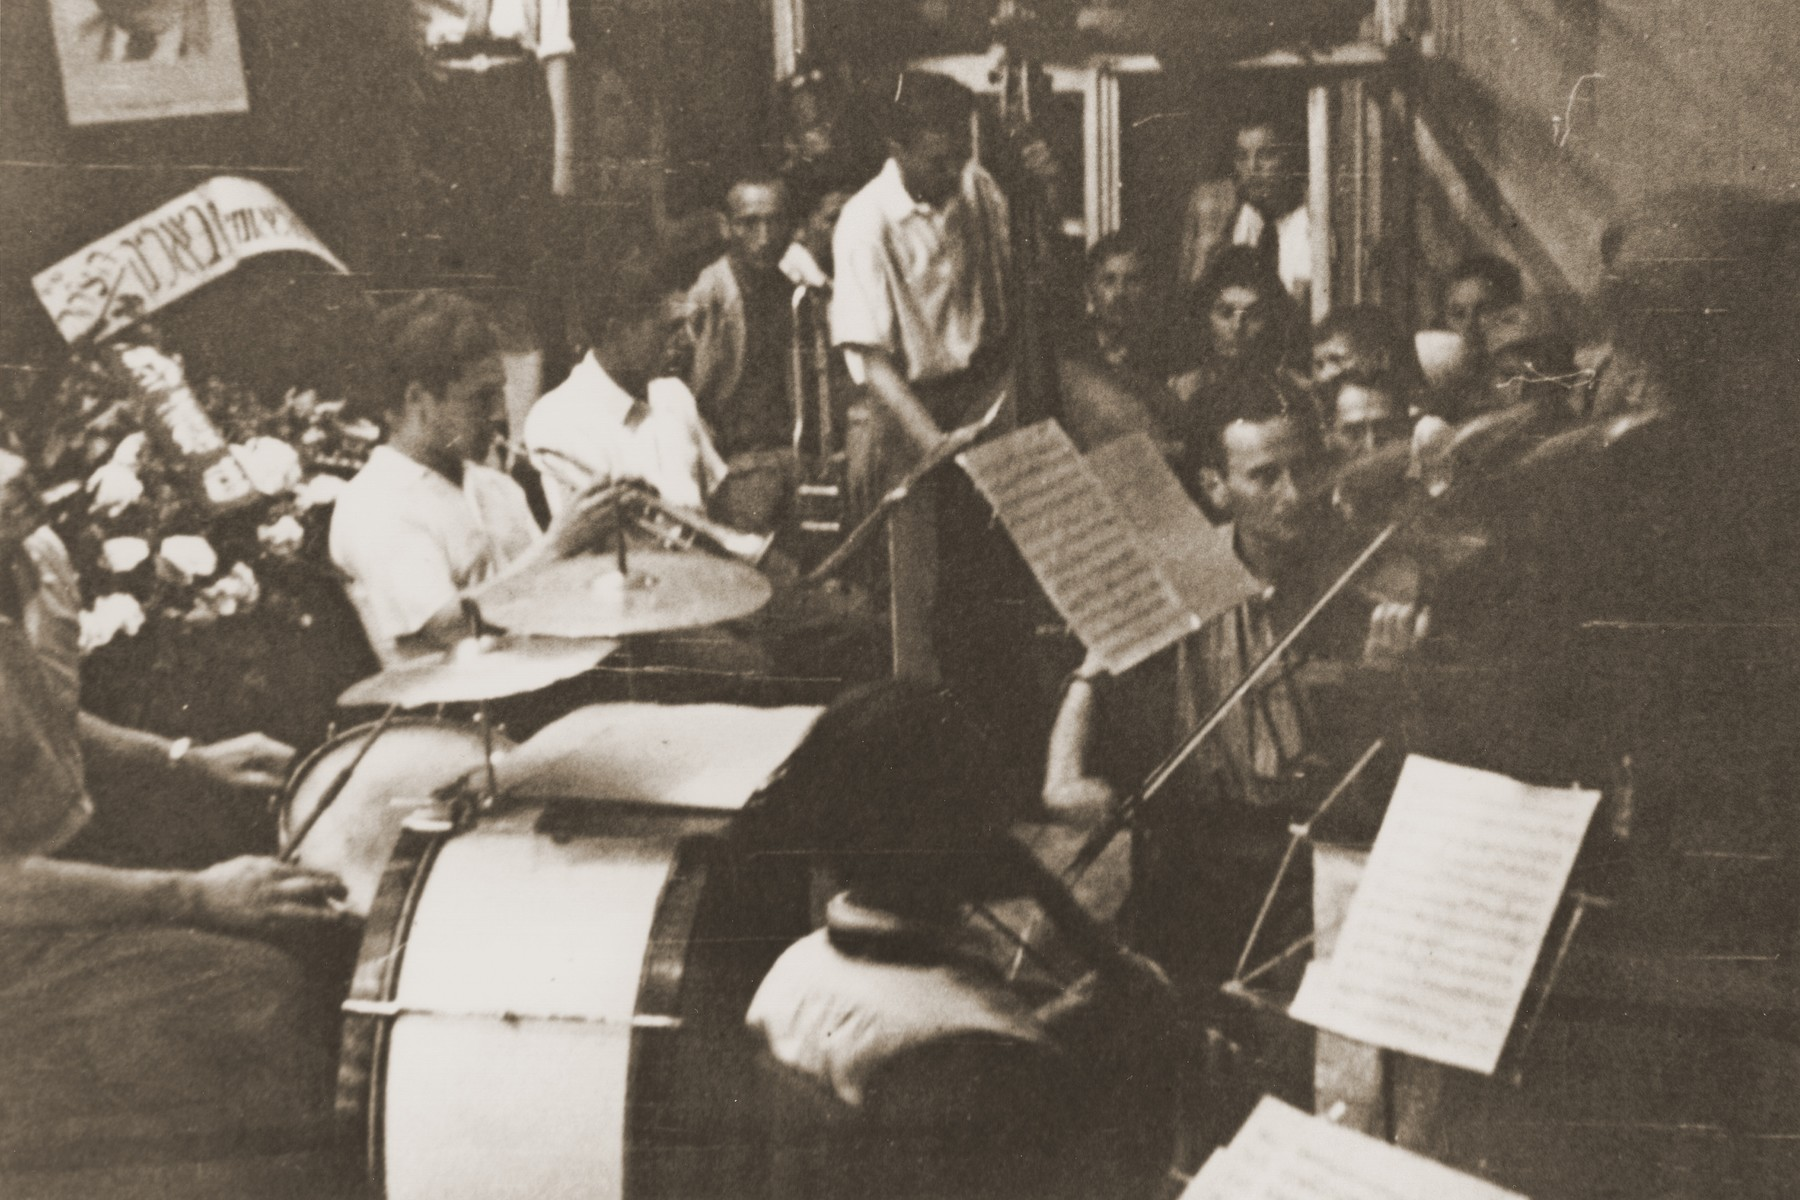 Performance by the Landsberg displaced persons camp orchestra.